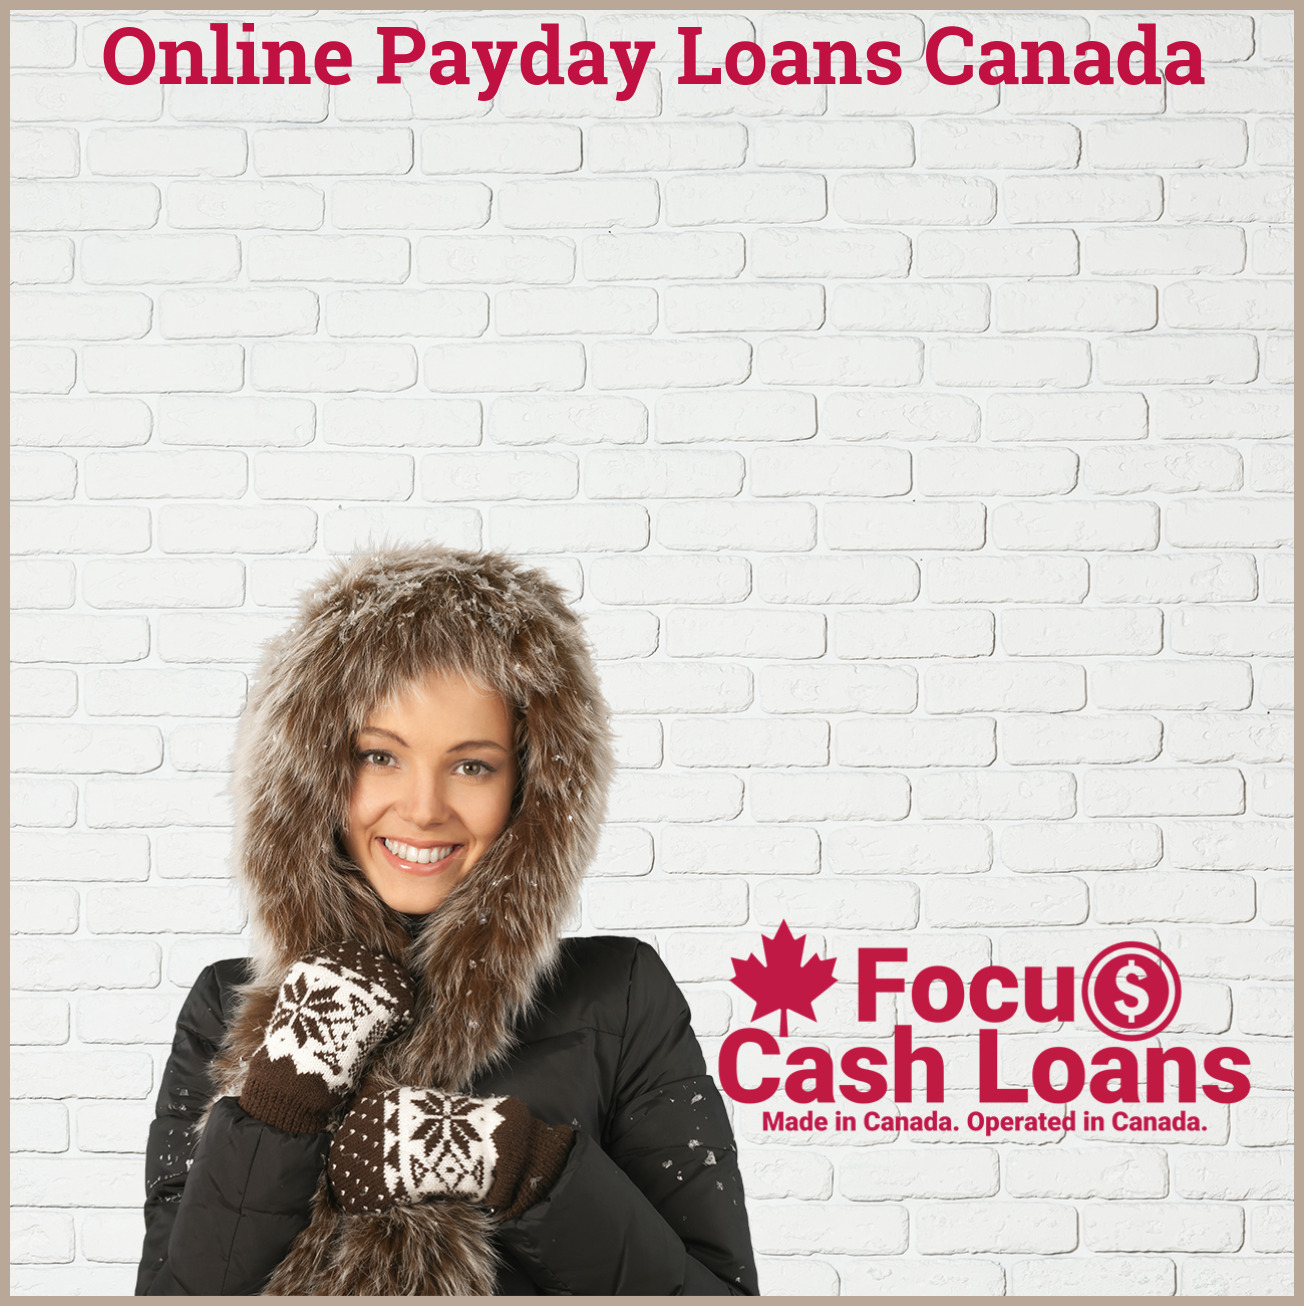 Picture of family that got Online Payday Loans Canada